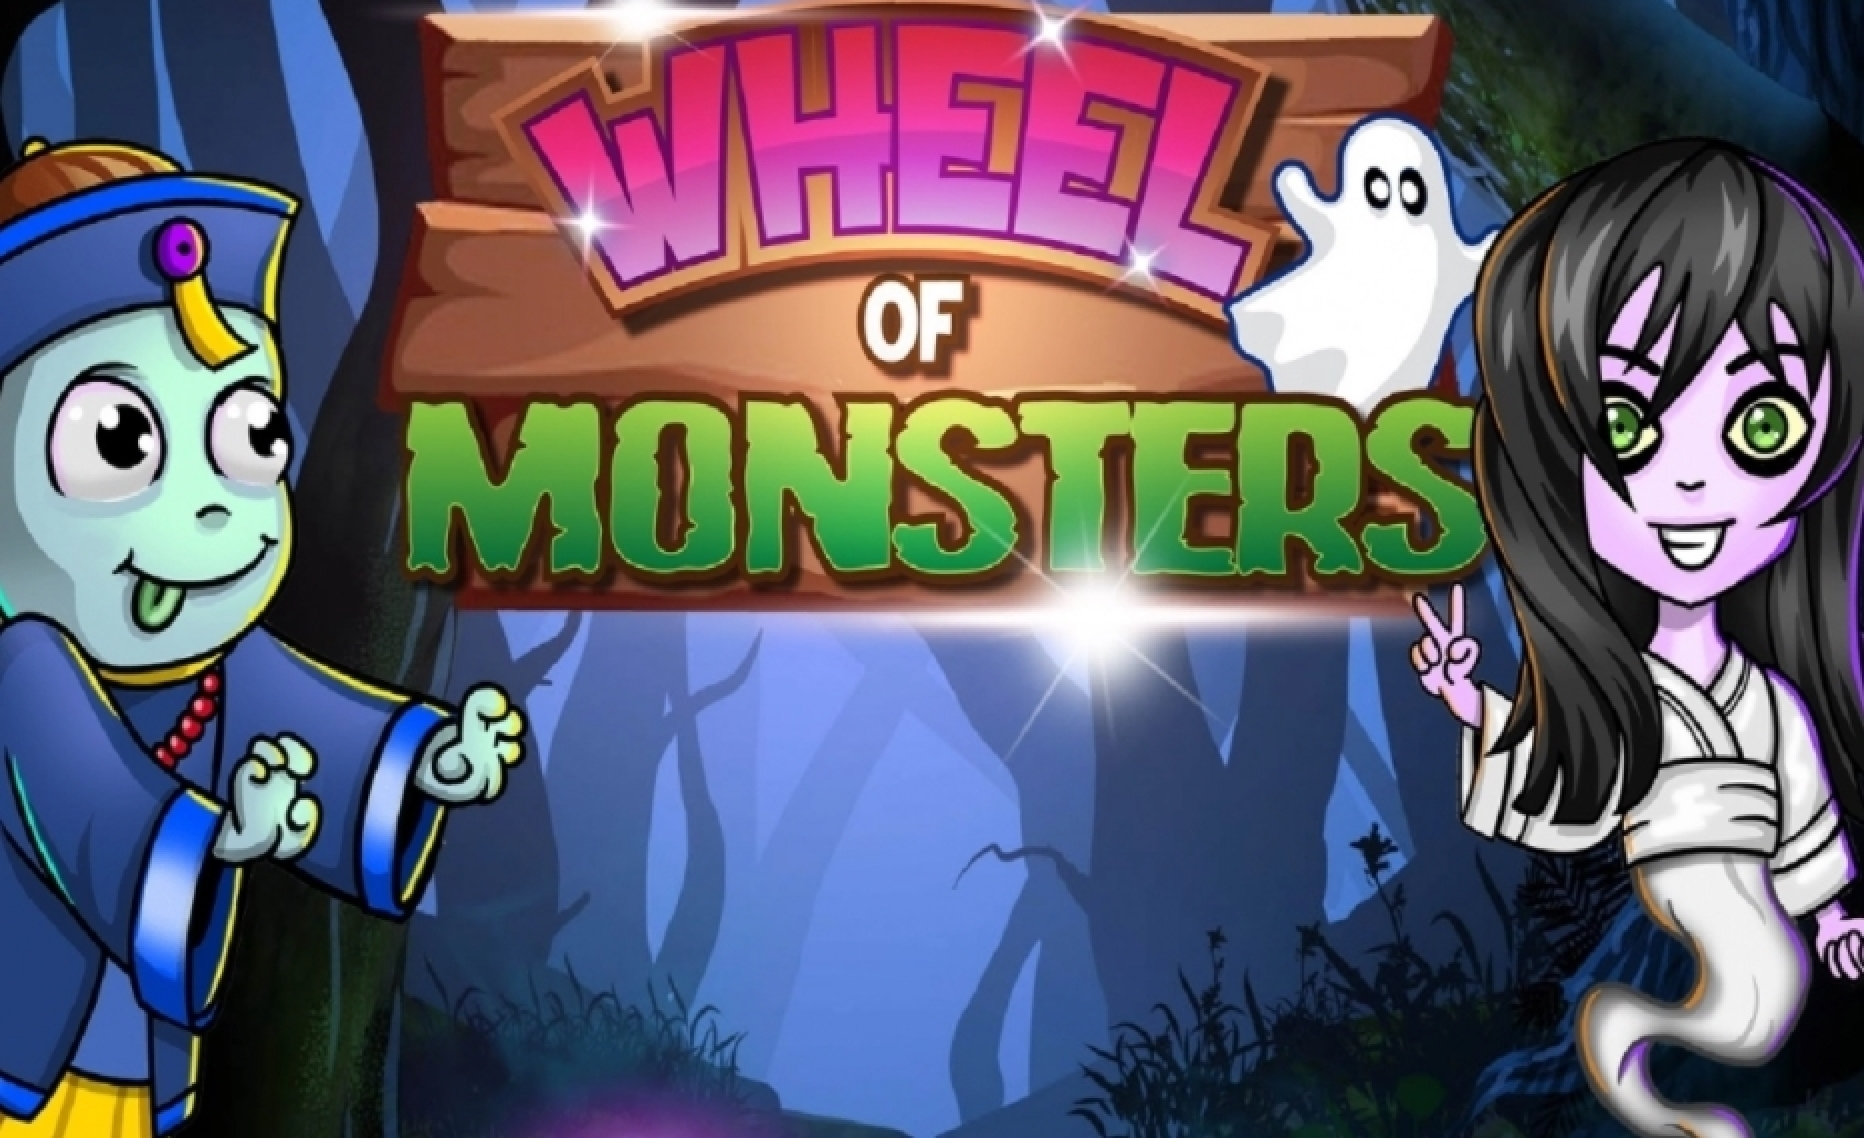 Reels in Wheel of Monsters Slot Game by Asylum Labs